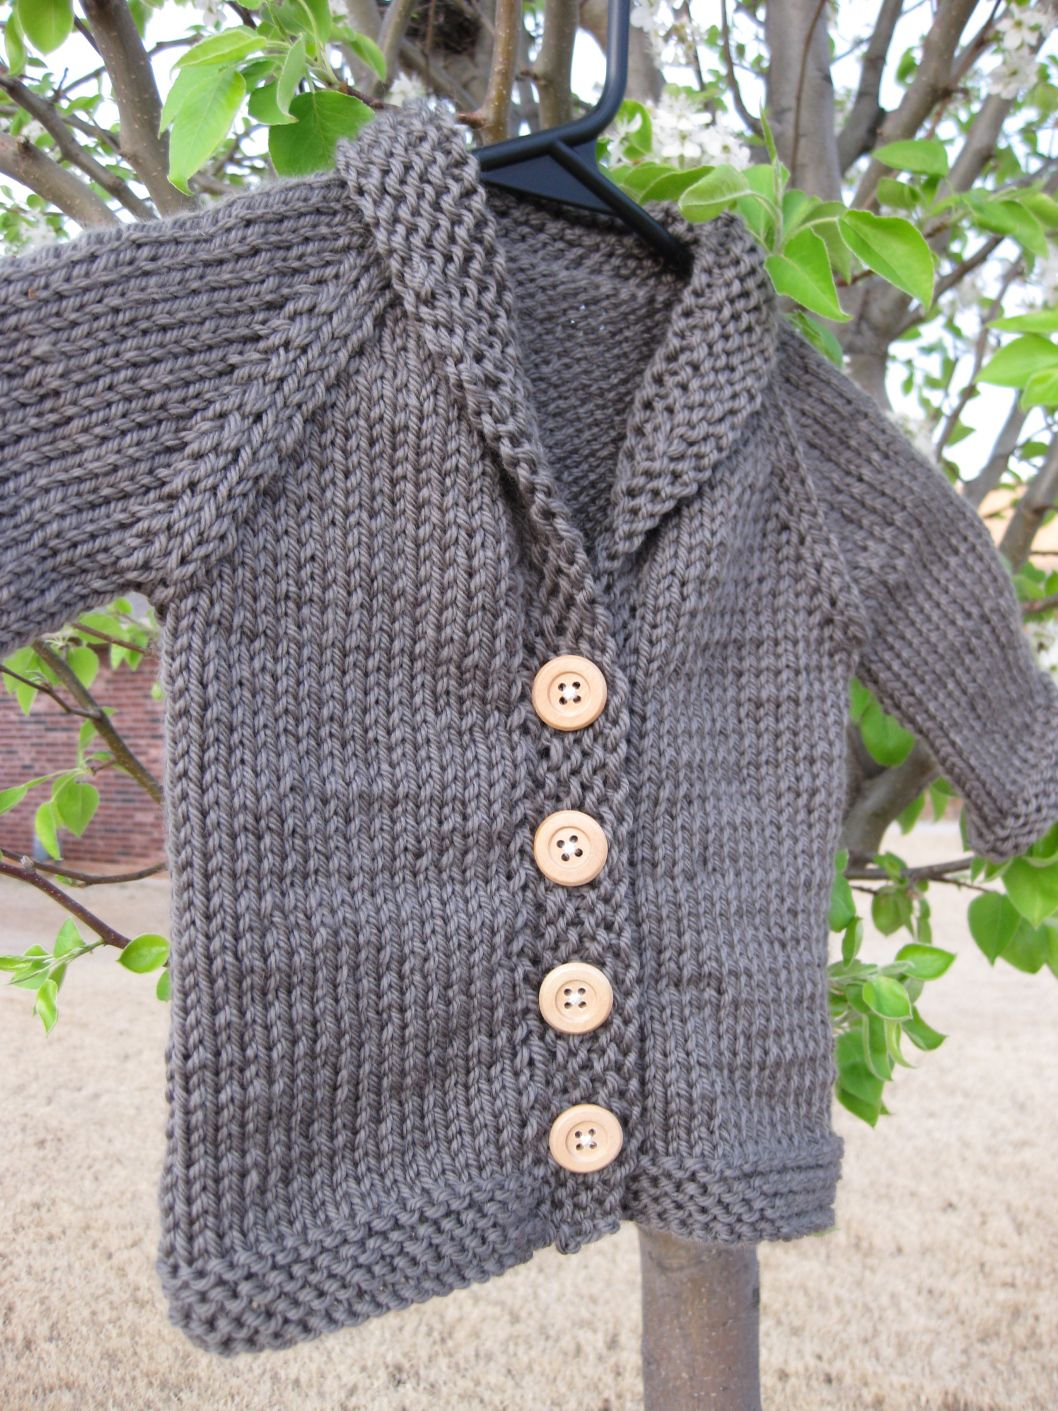 10+ Free Baby Sweater Knitting Patterns | Knitting patterns ...